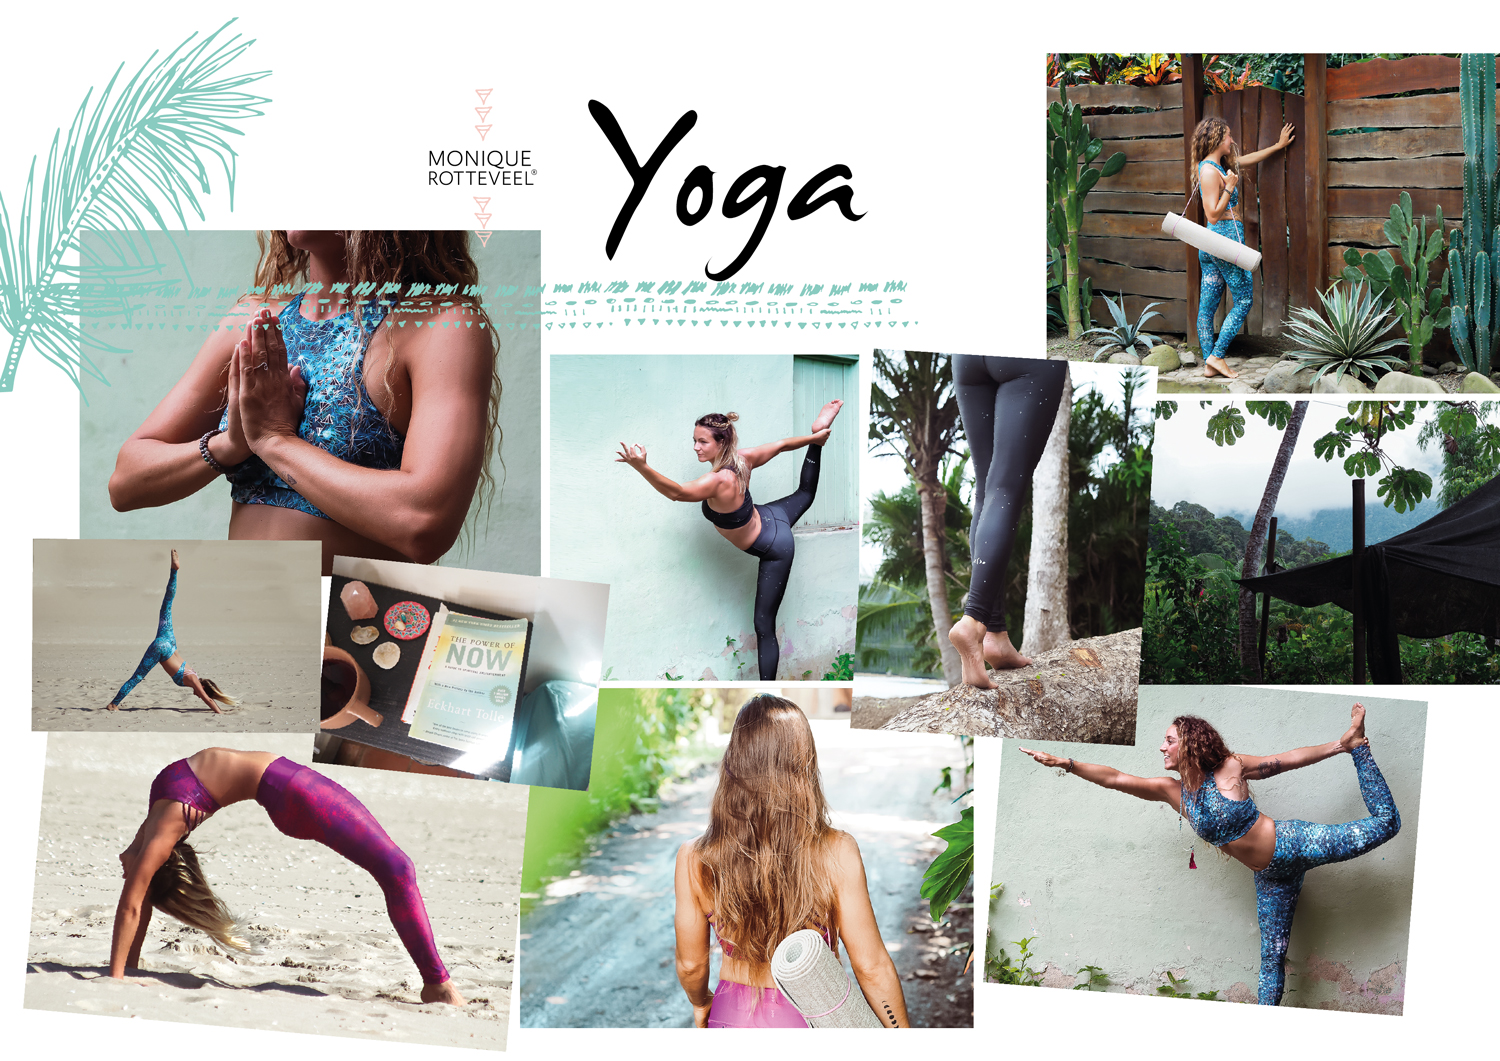 yoga recycled yogawear eco friendly monique rotteveel